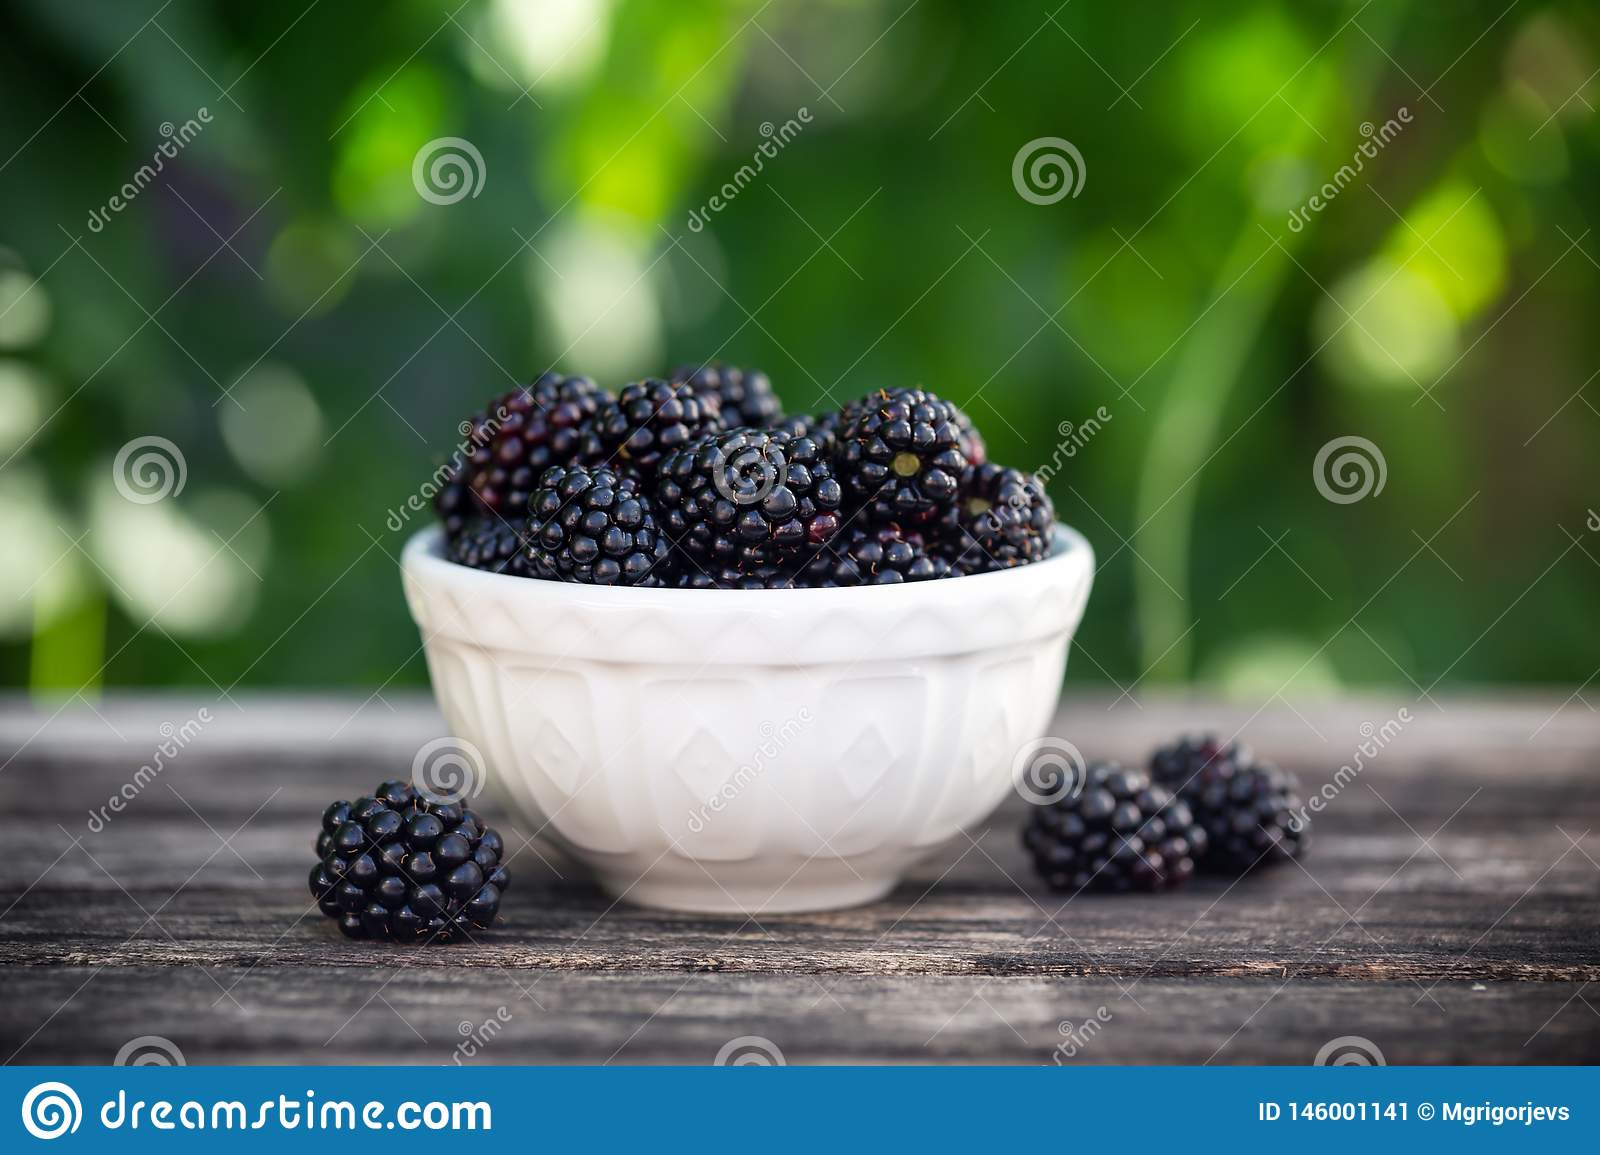 Blackberry in small bowl on wooden table in garden